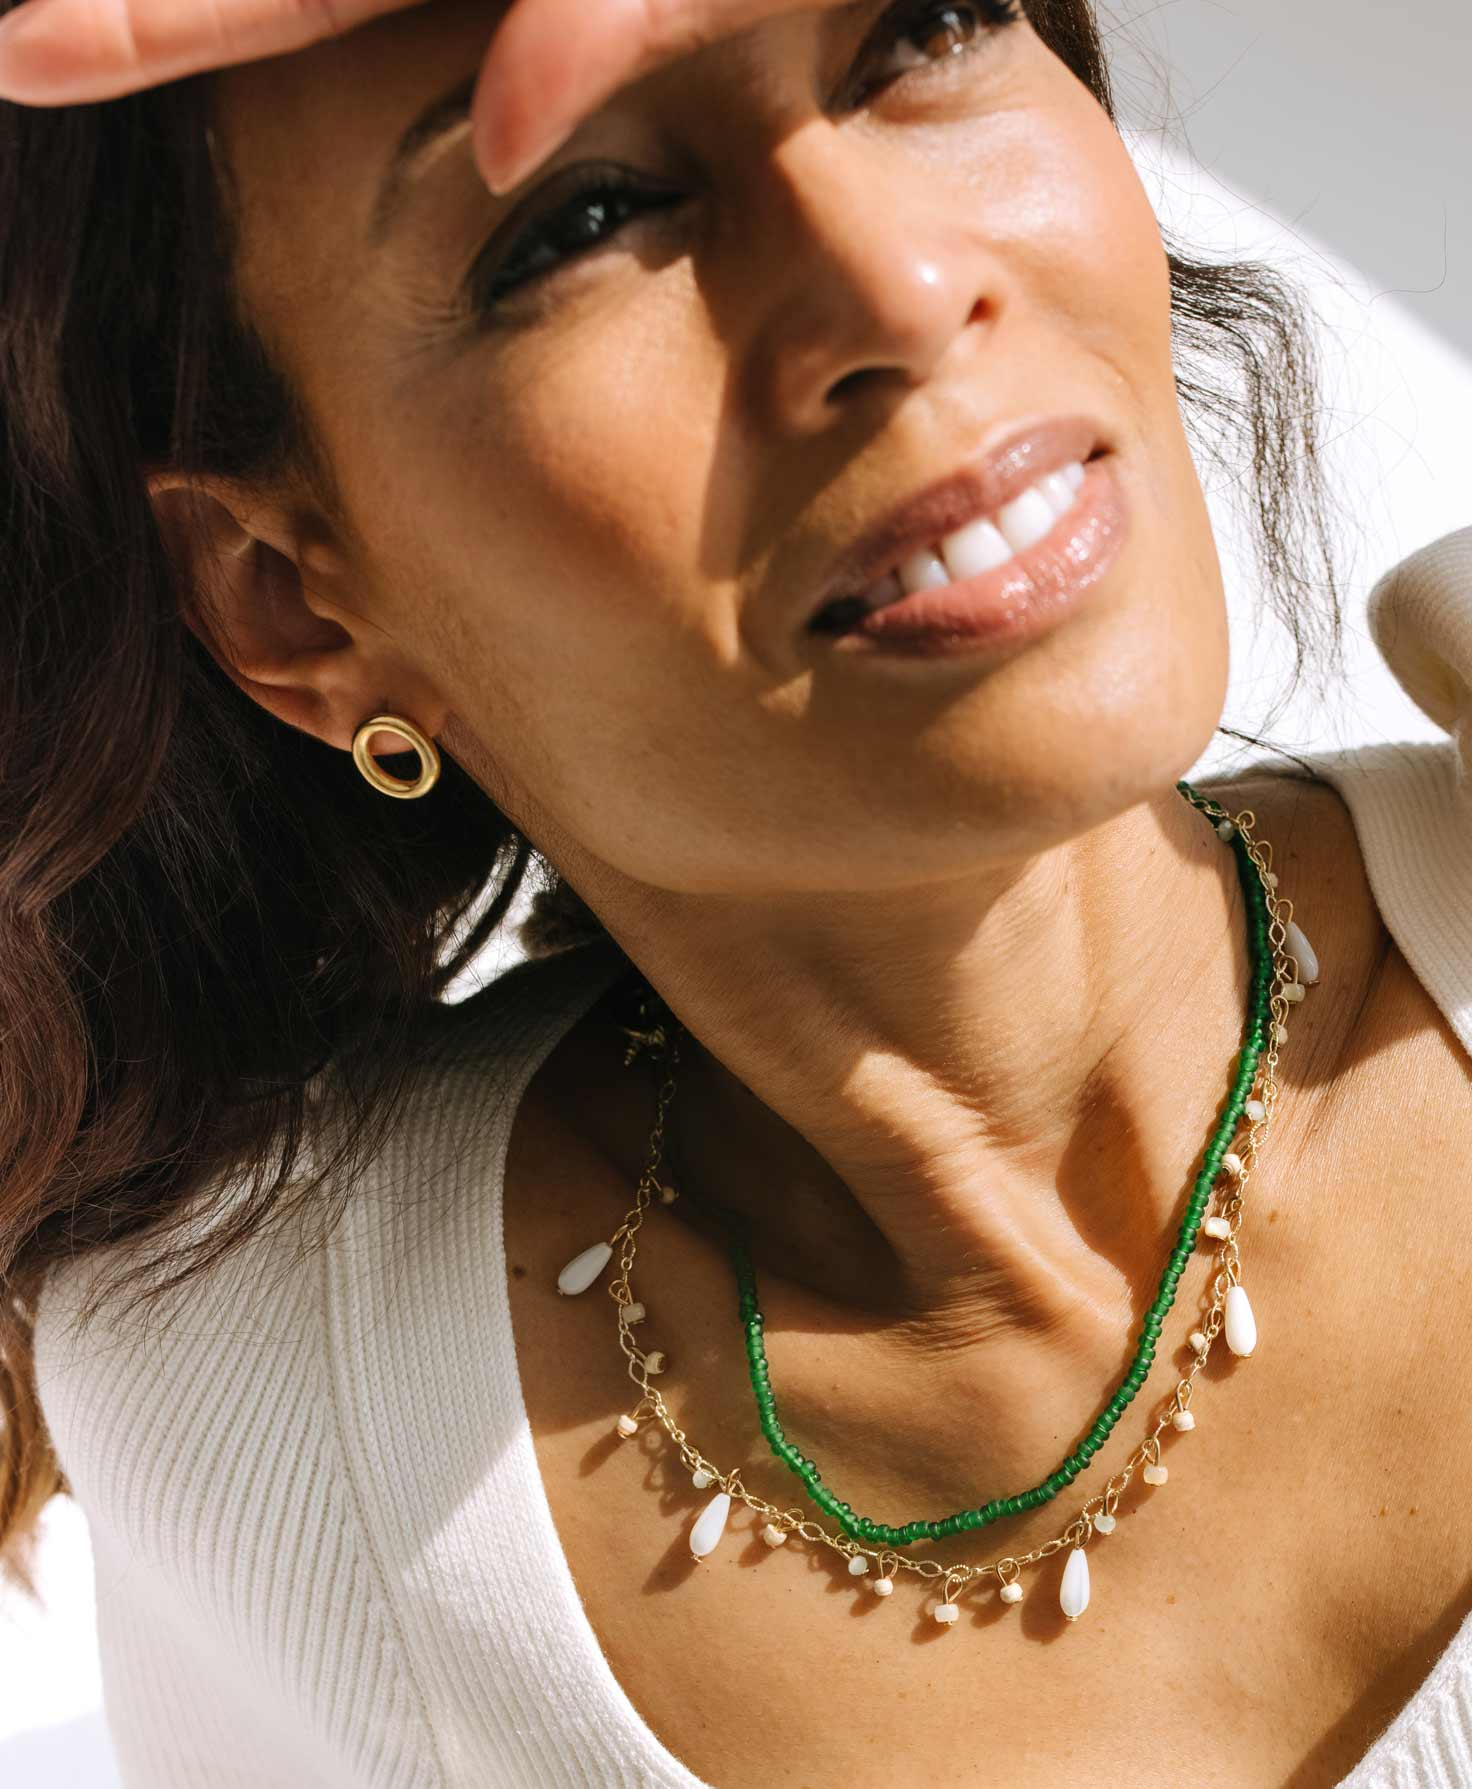 A model wears the Revolve Earrings with a neutral white top. She also wears the gold and white Shipshape Necklace and the Fern Necklace, which brings a pop of color to the neutral look.